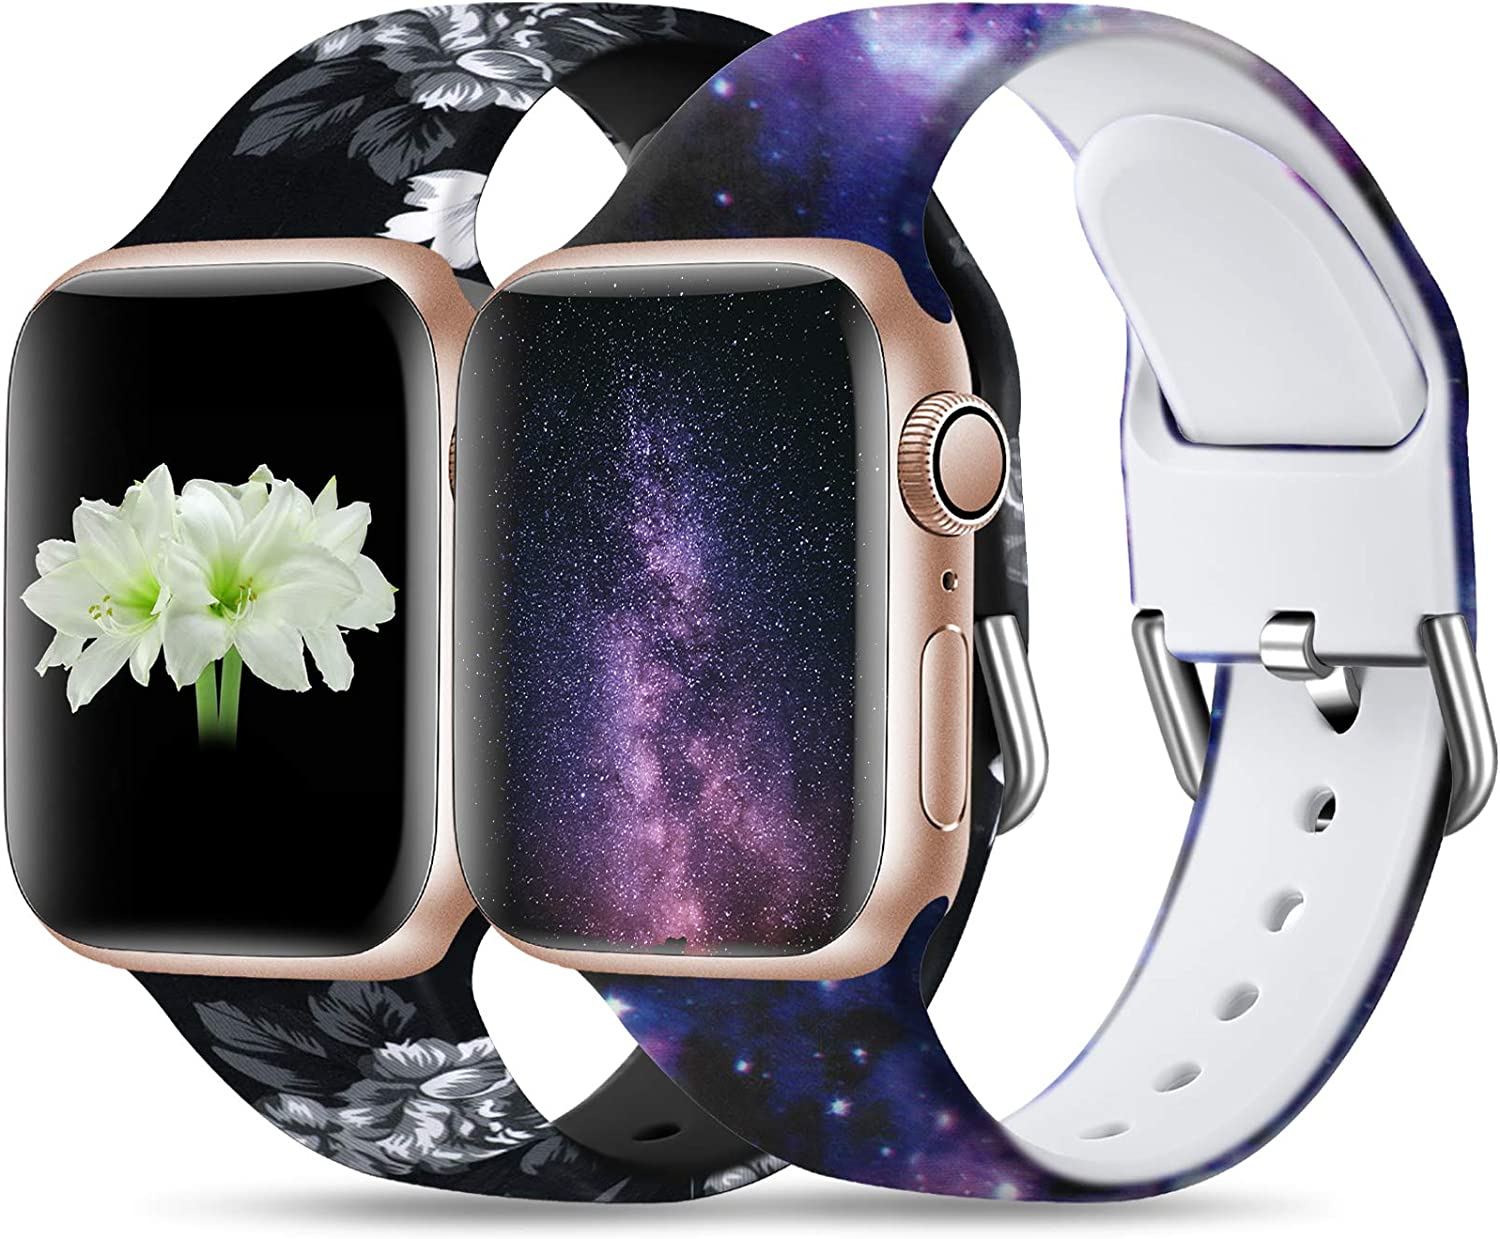 Dirrelo Compatible for Apple Watch Bands 40mm 38mm Soft Silicone Pattern Printed Band Strap for iWatch SE & Series 6 & Series 5 4 3 2 1 Women Wristband, S/M 2-Pack Grey Floral & Starry Night